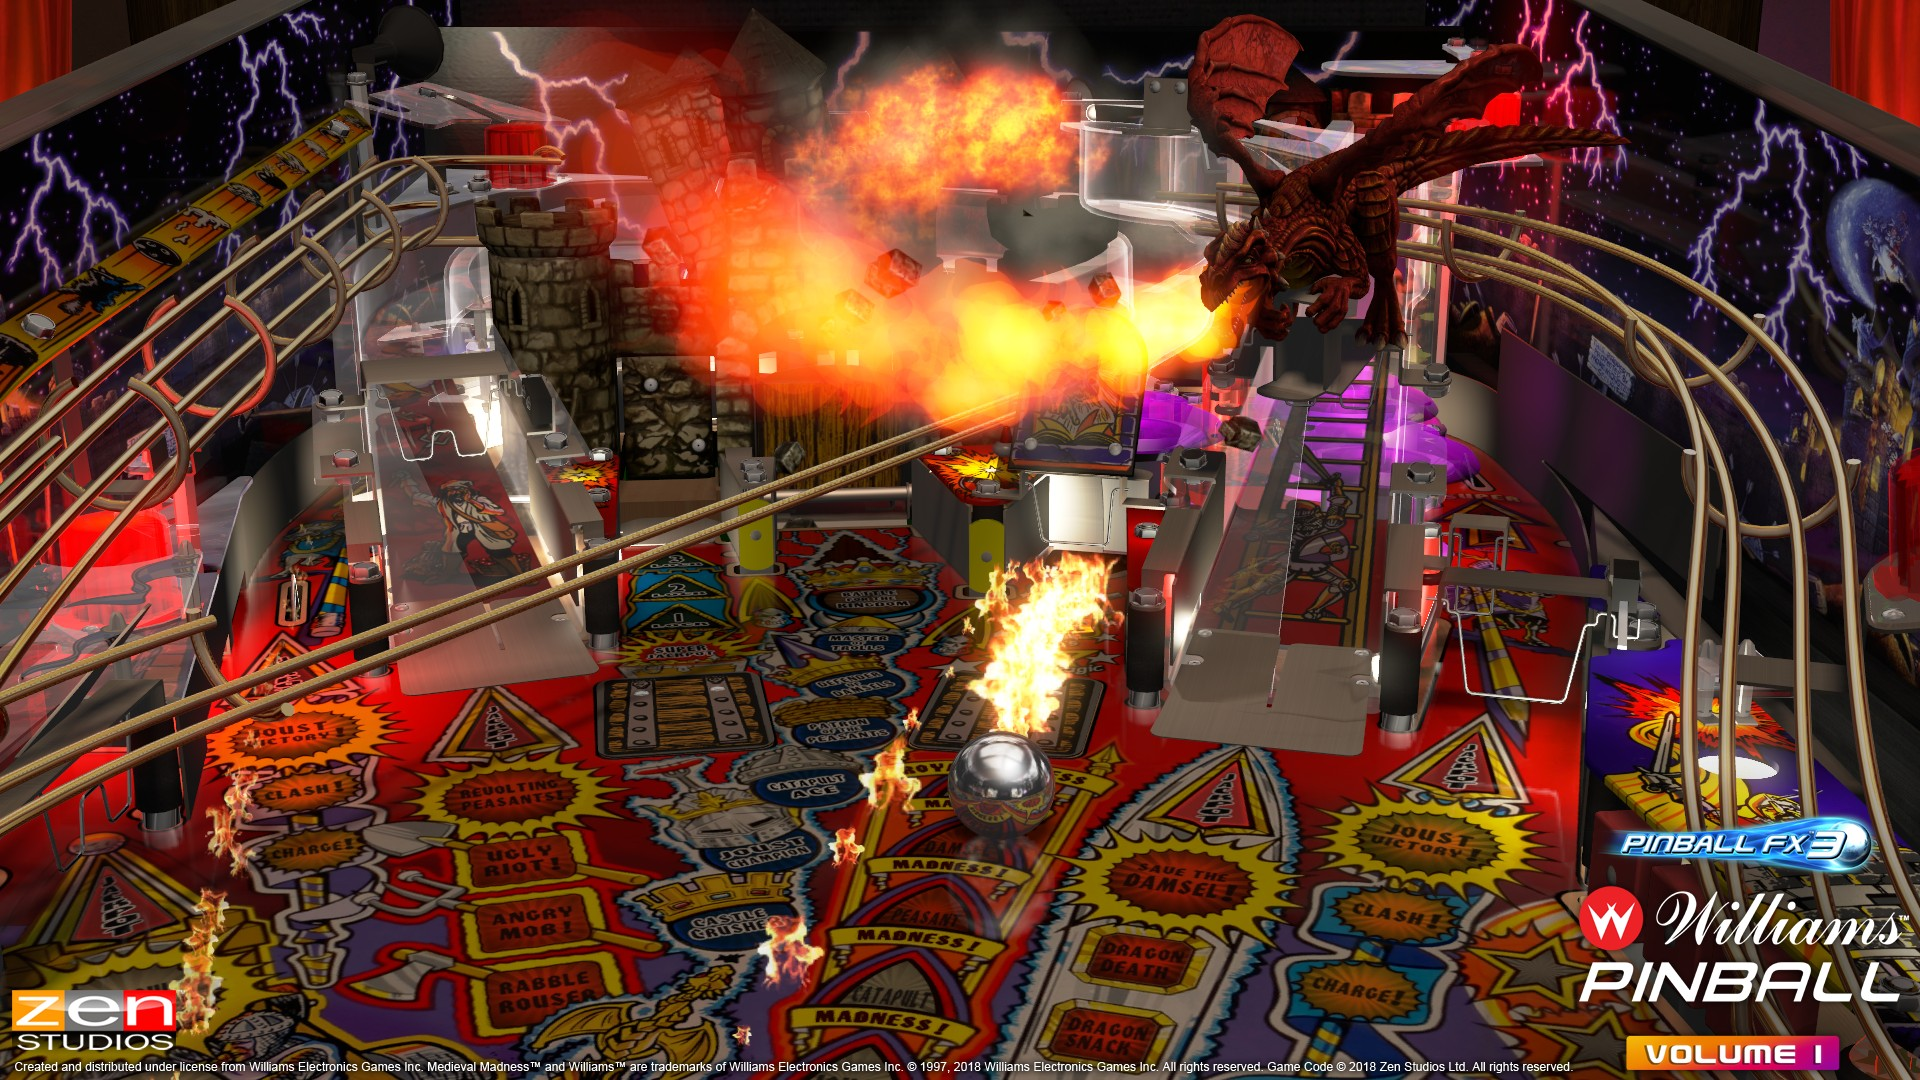 Pinball FX3 Welcomes Williams Pinball: Volume 1 and a New